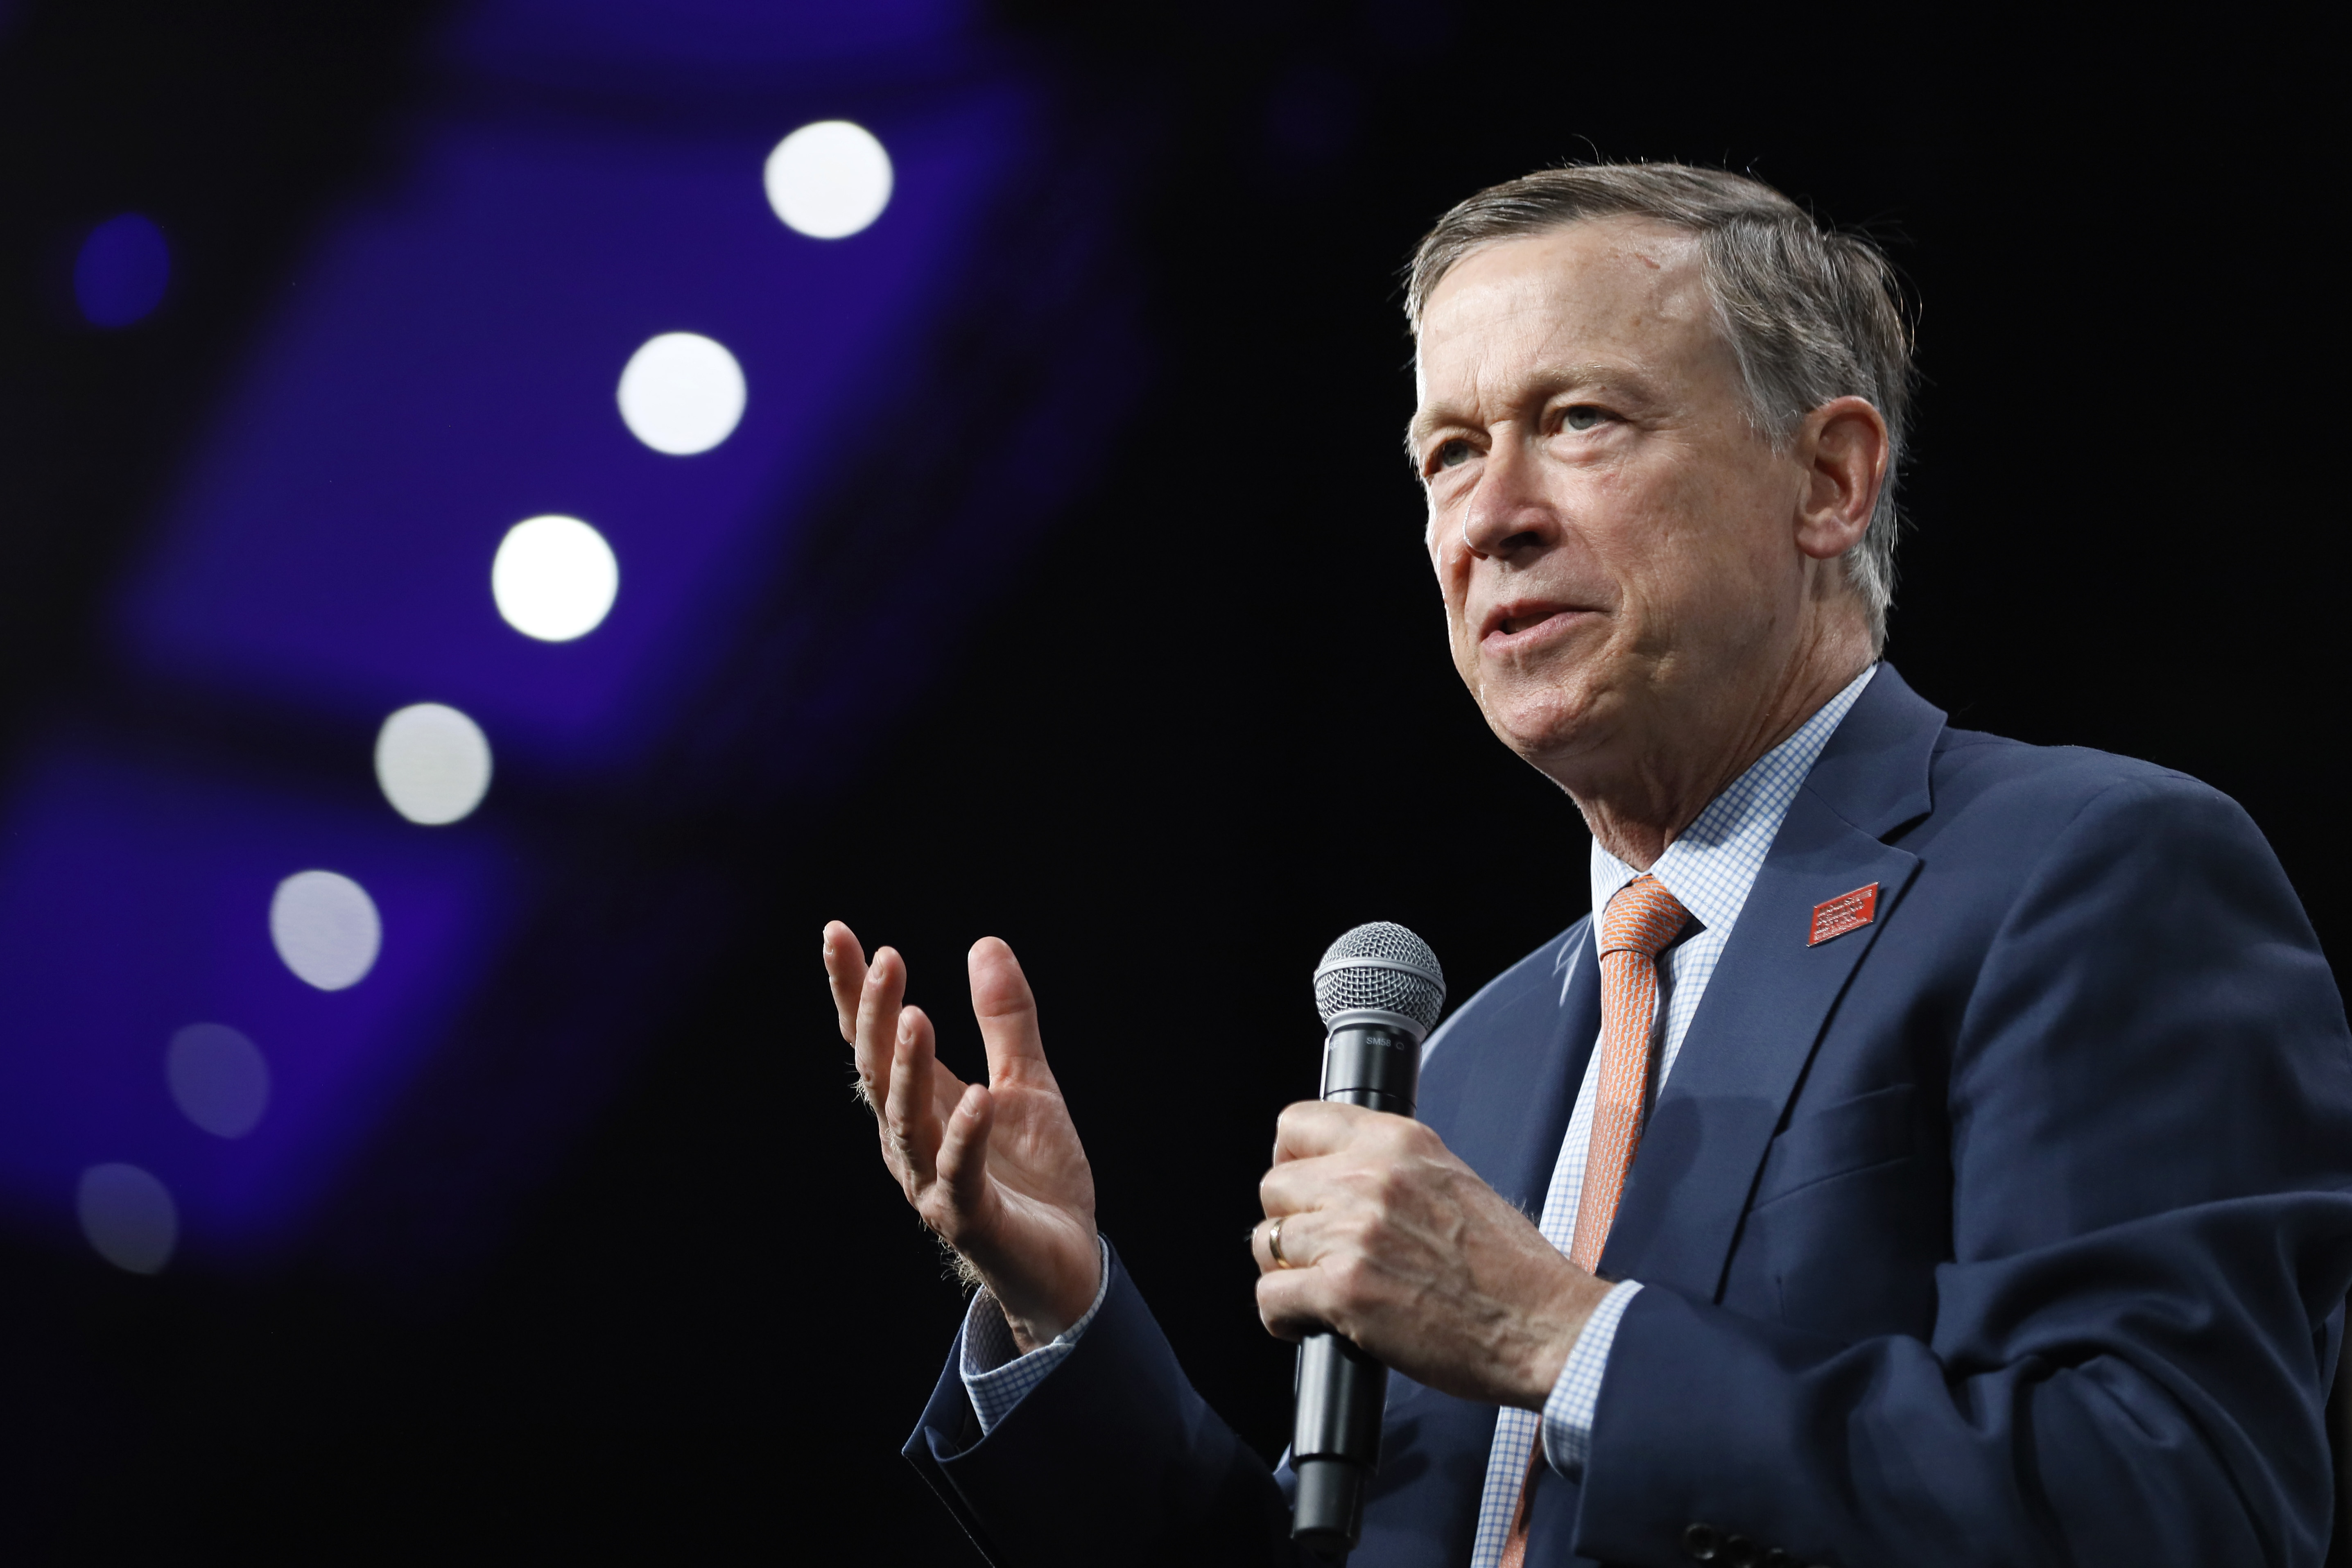 John Hickenlooper to drop out Thursday: Report